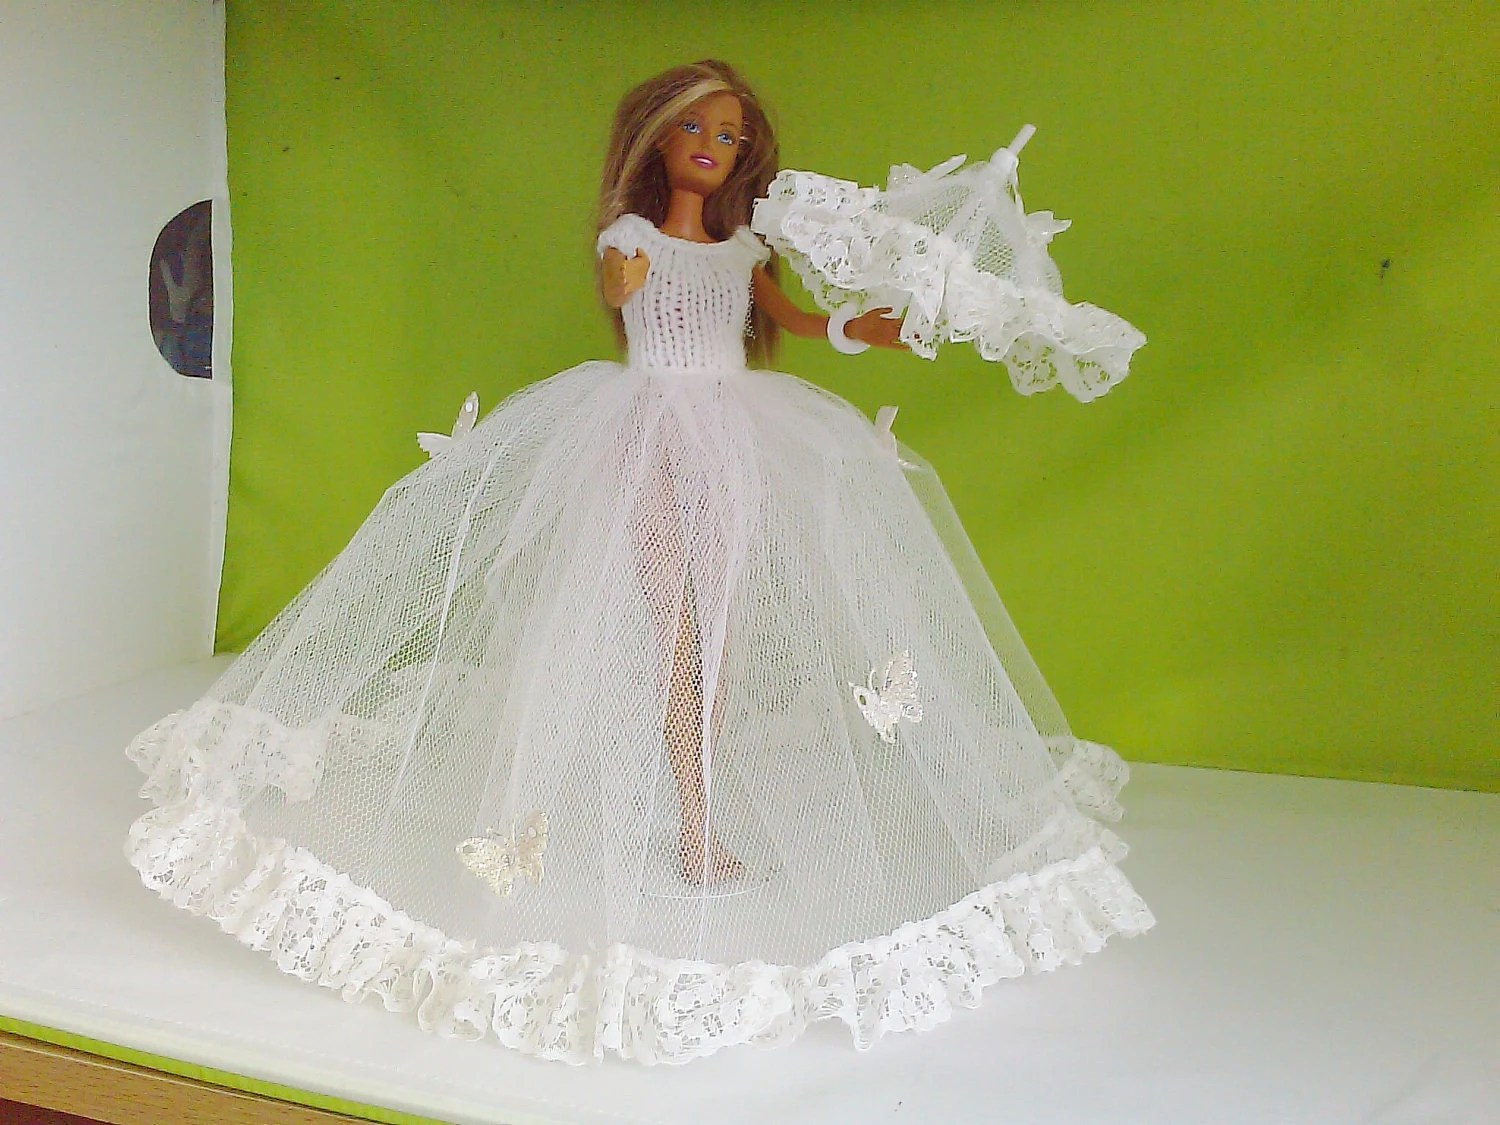 New handmade ROYAL WEDDING inspired wedding dress- barbie/sindy dolls clothes    764  x  59